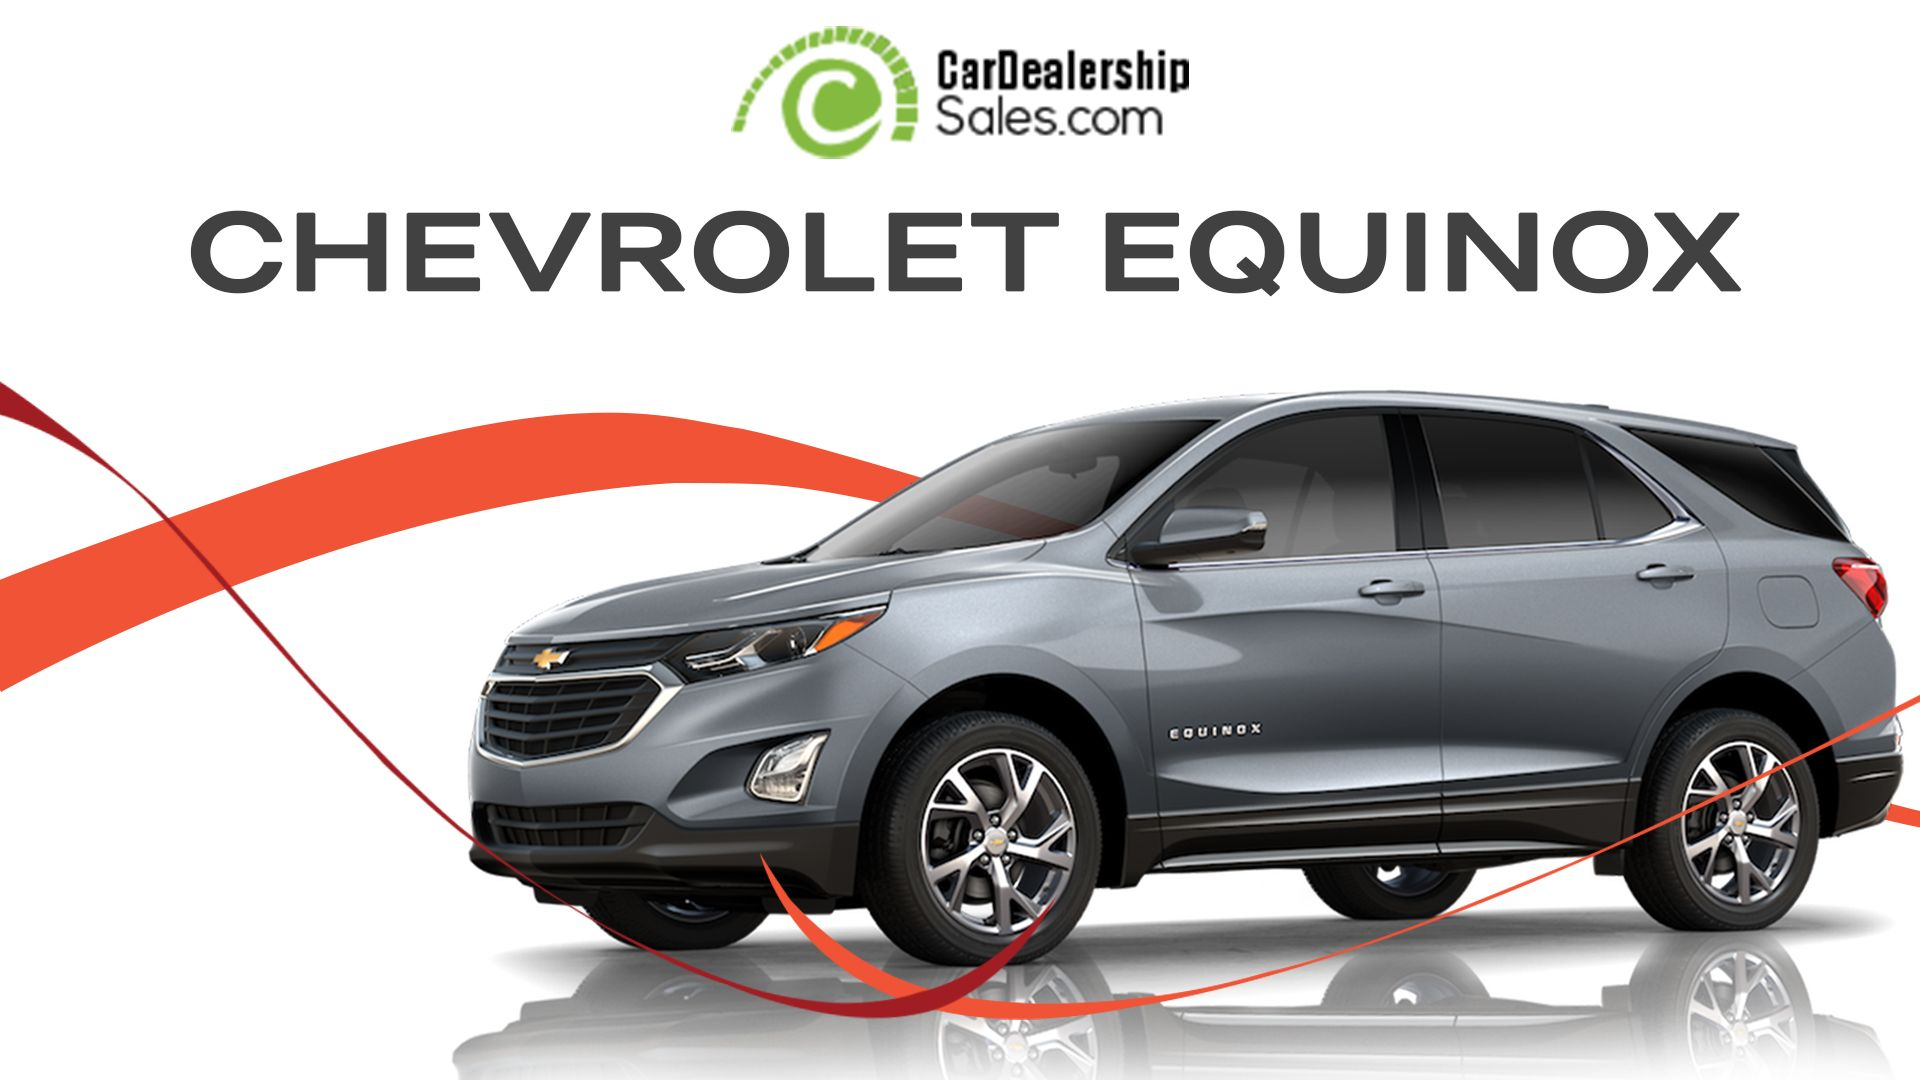 Chevy Equinox Reviews Best Compact Suv 2019 Chevy Equinox Best